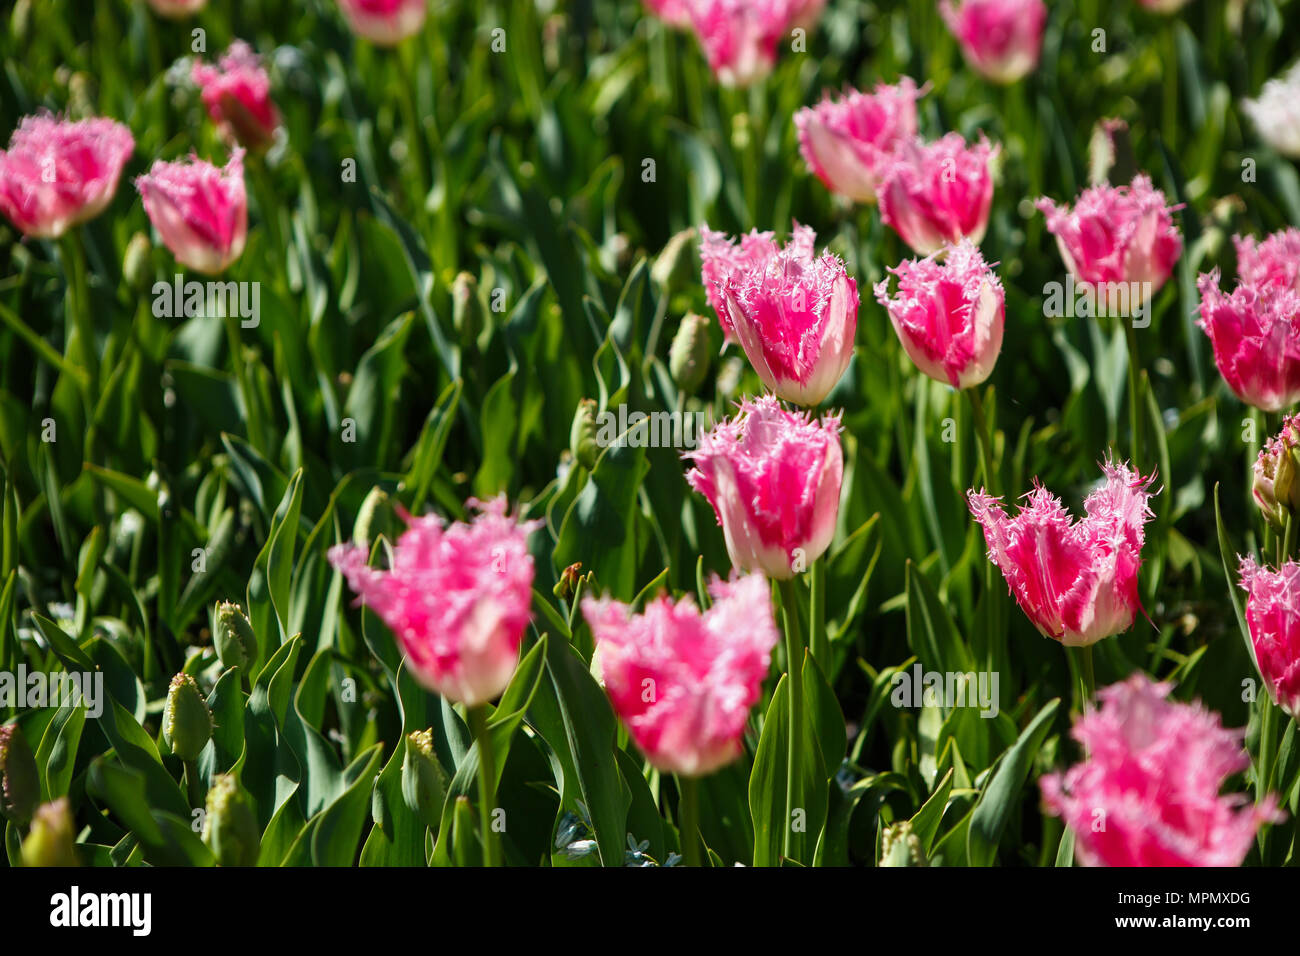 Beautiful Colorful Pink Tulips Flowers Bloom In Spring Garden